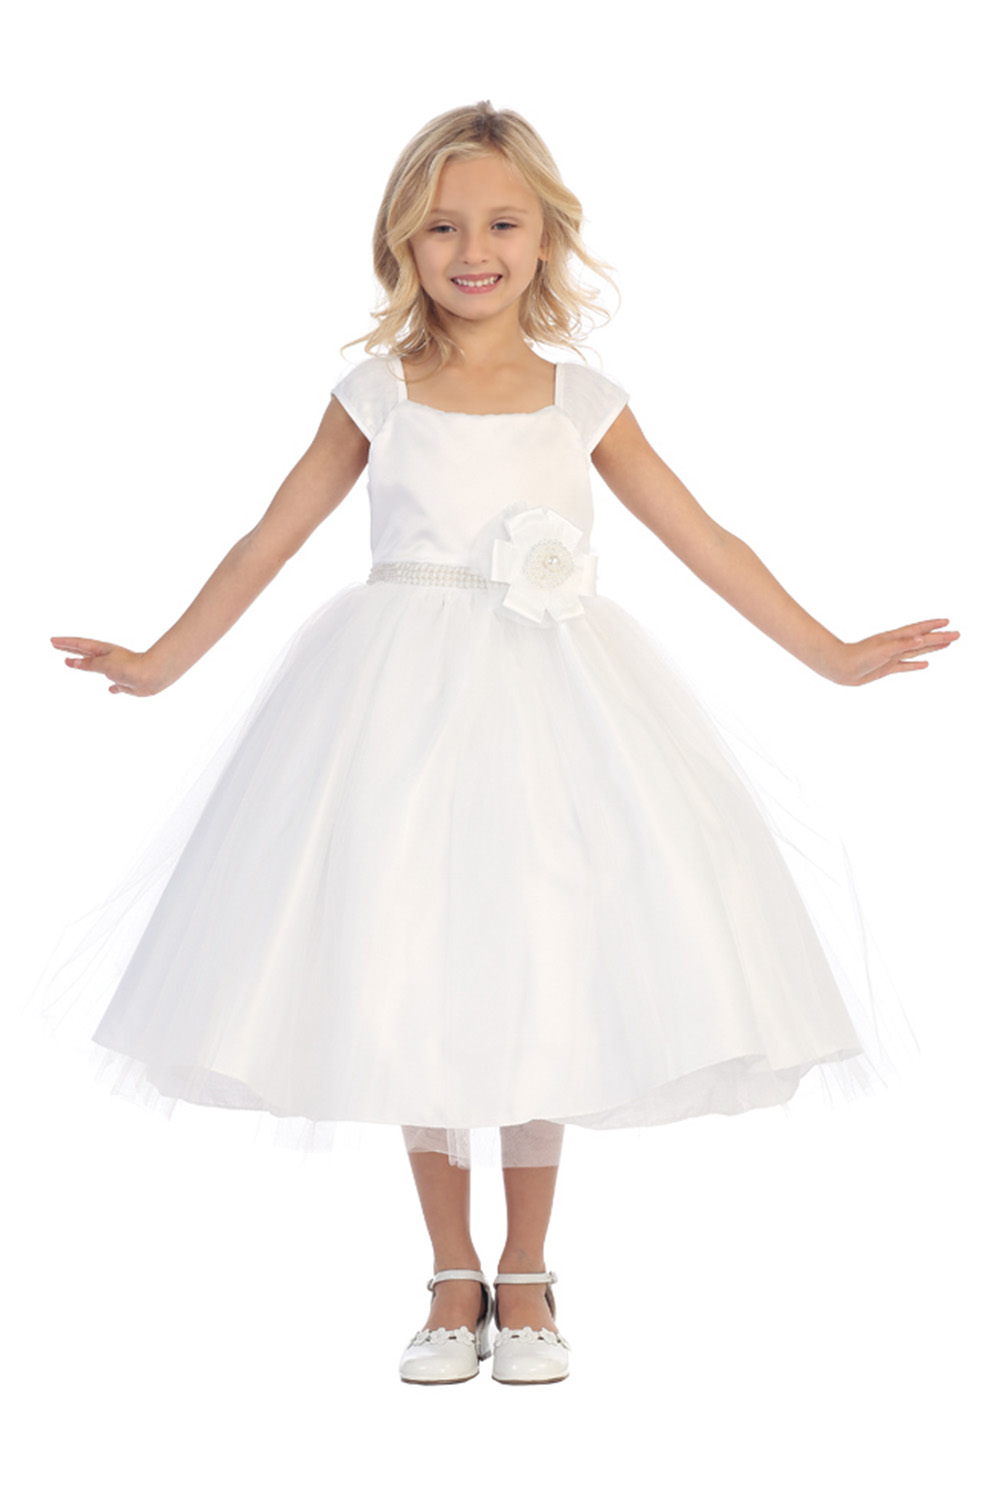 2017 A-Line First Communion Dresses for Girls Mid-Calf Flower Girls Dresses For Wedding Gowns Sleeveless Mother Daughter Dresses a line first communion dresses for girls mid calf flower girls dresses for wedding gowns sleeveless mother daughter dresses